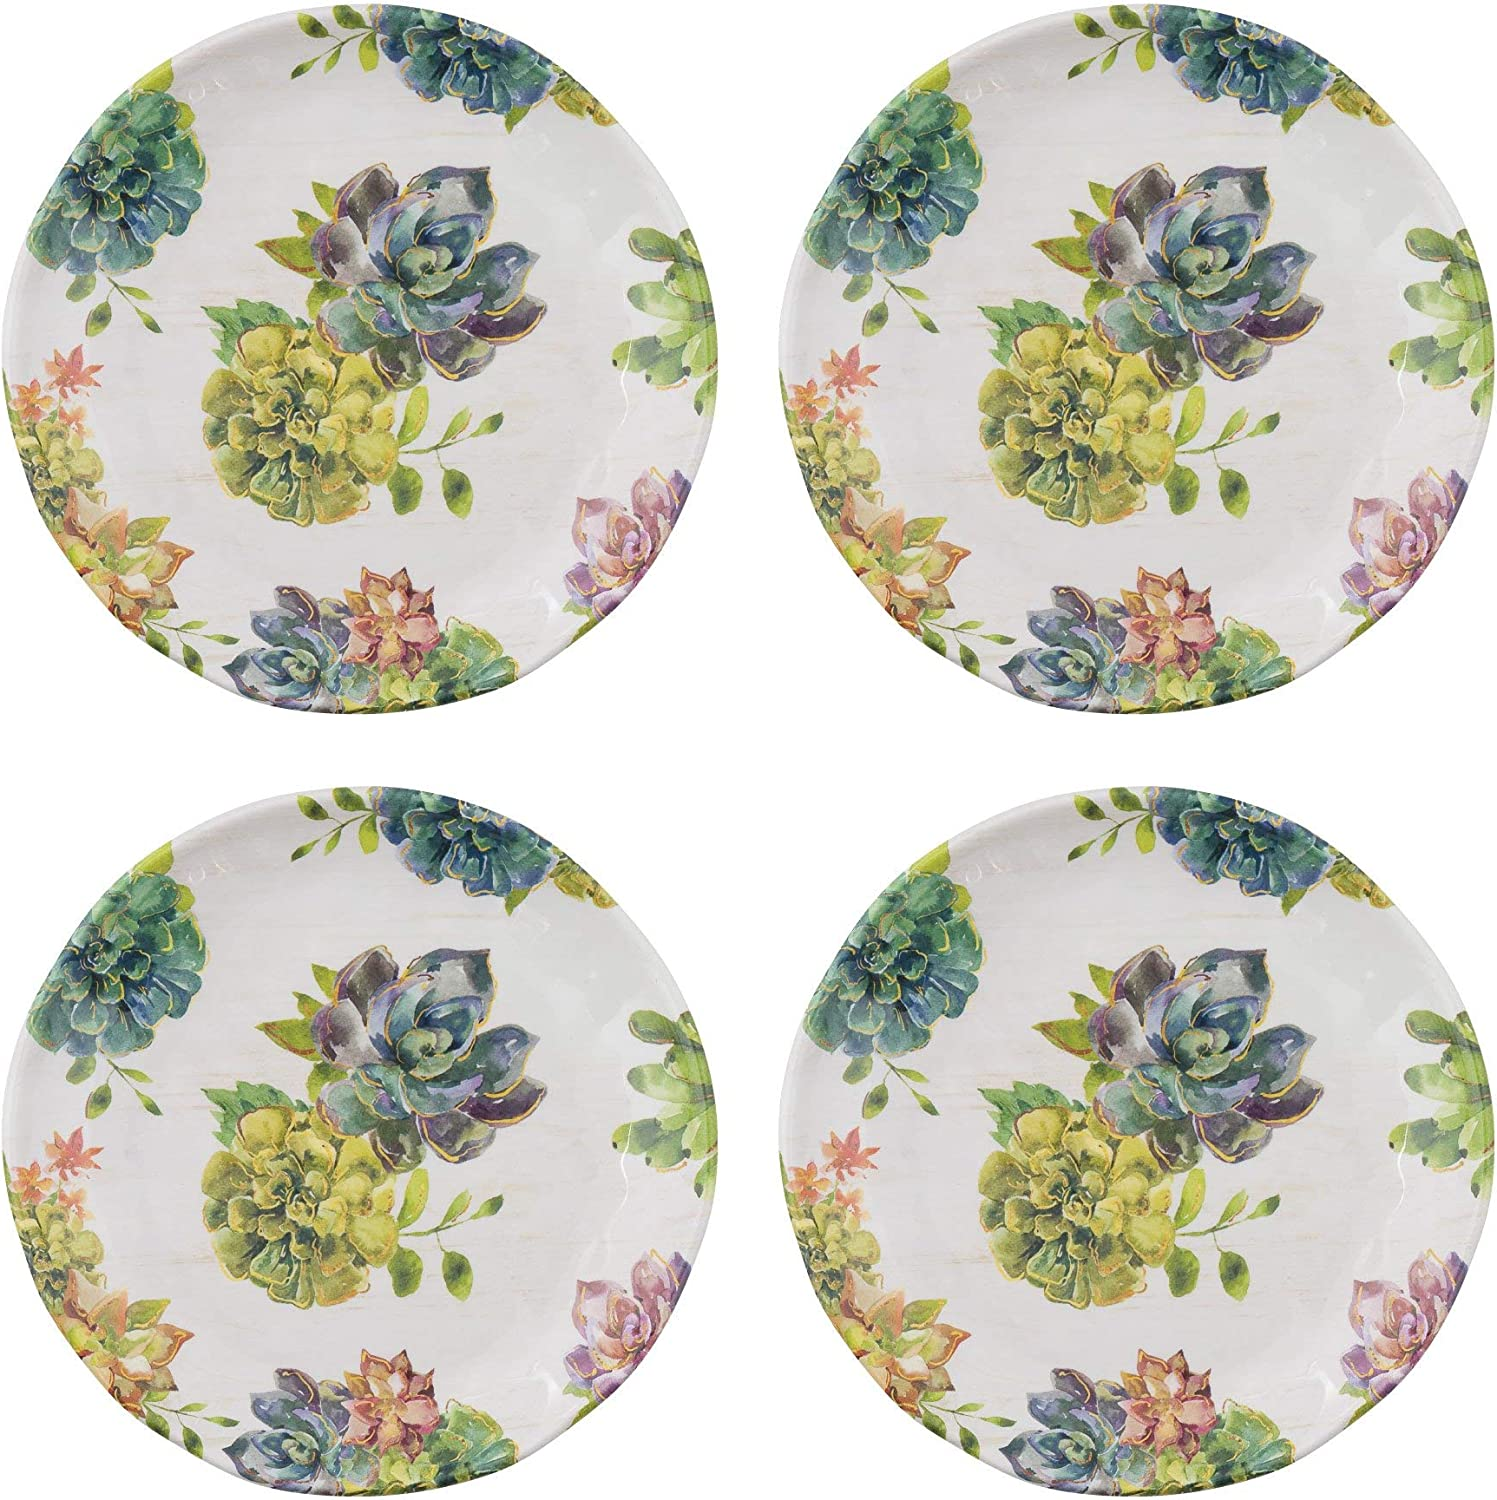 Gourmet Art 4-Piece Succulents Heavyweight and Durable Melamine 6 Inch Plate for Indoors Outdoors Use, Party, Wedding and Everyday Use.